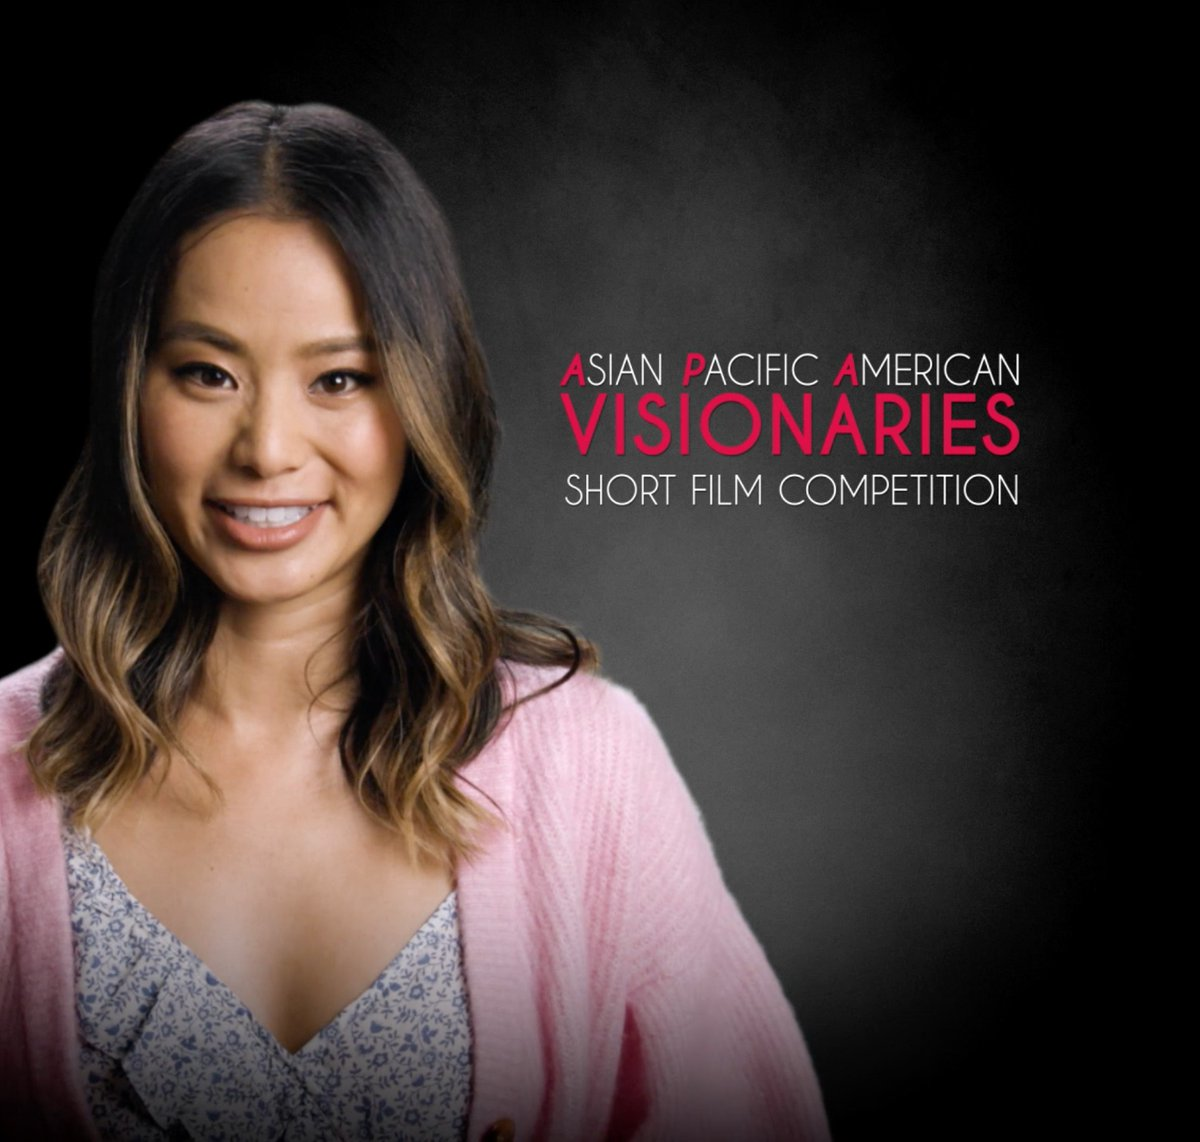 .@jamiechung1 of @LovecraftHBO is calling on Asian Pacific American filmmakers: #HBOVisionaries is now accepting submissions for the 2021 short film competition. Winning films will have the opportunity to be on HBO. Submit here by April 1: hbovisionaries.com